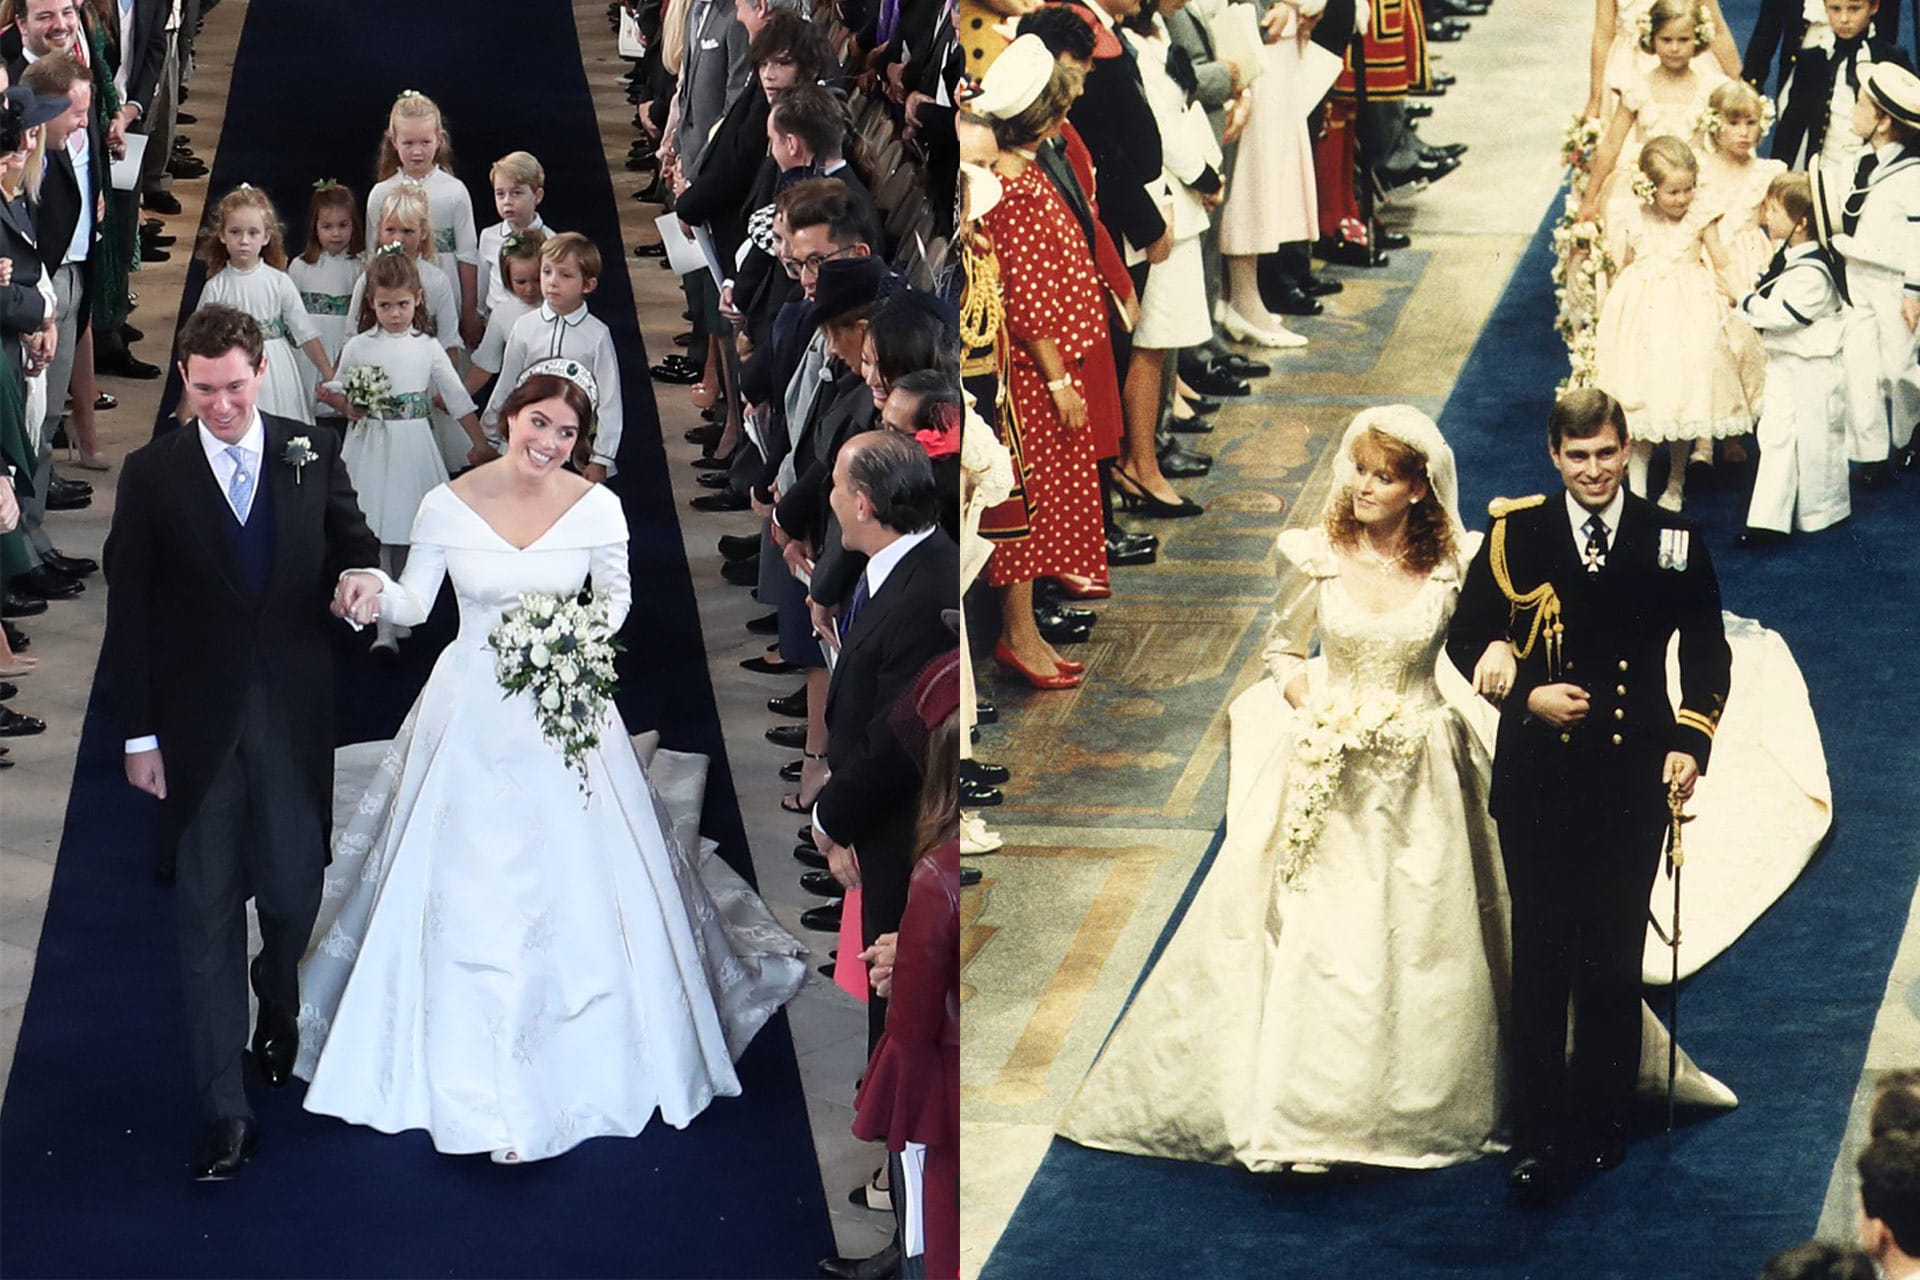 Princess Eugenie Wedding.Was Princess Eugenie Chanelling Her Mother With Her Wedding Dress